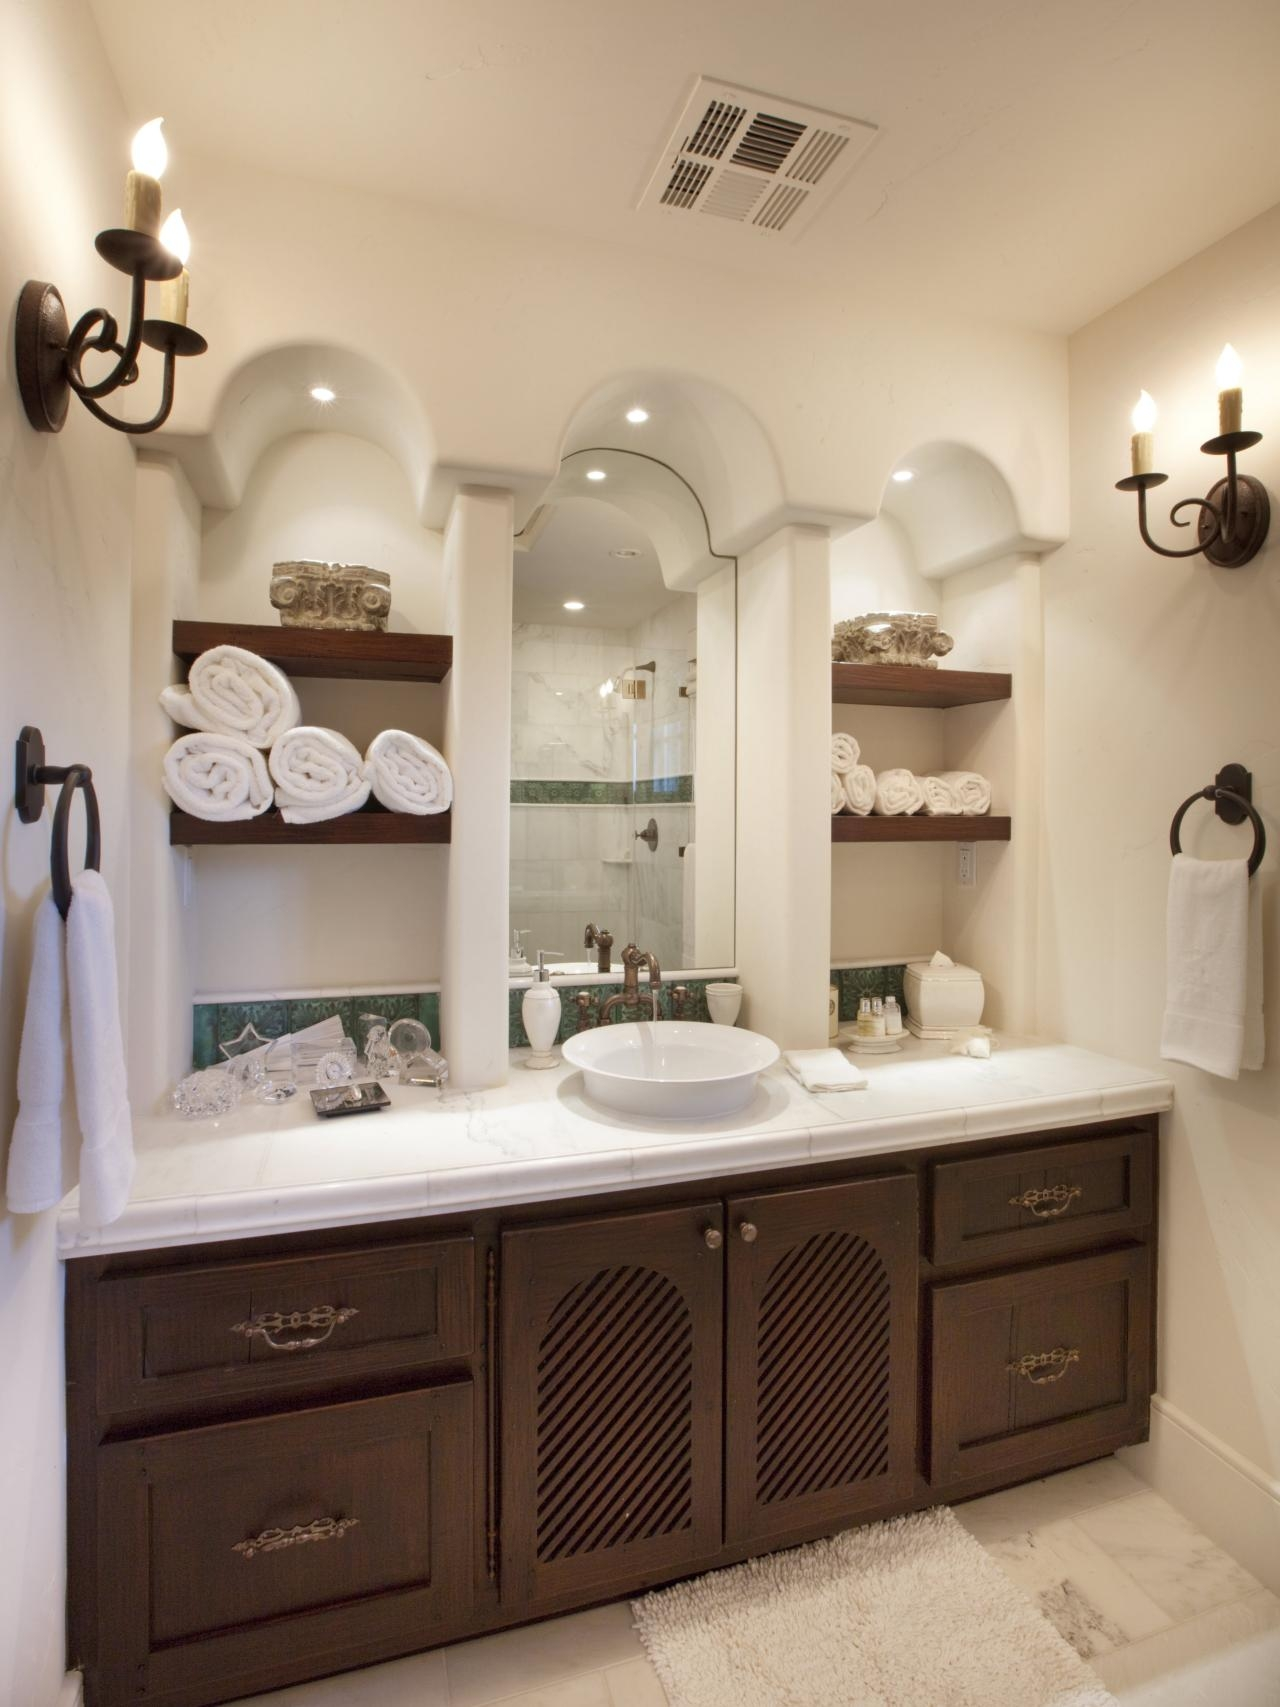 Small Bathroom Cabinet For Towels